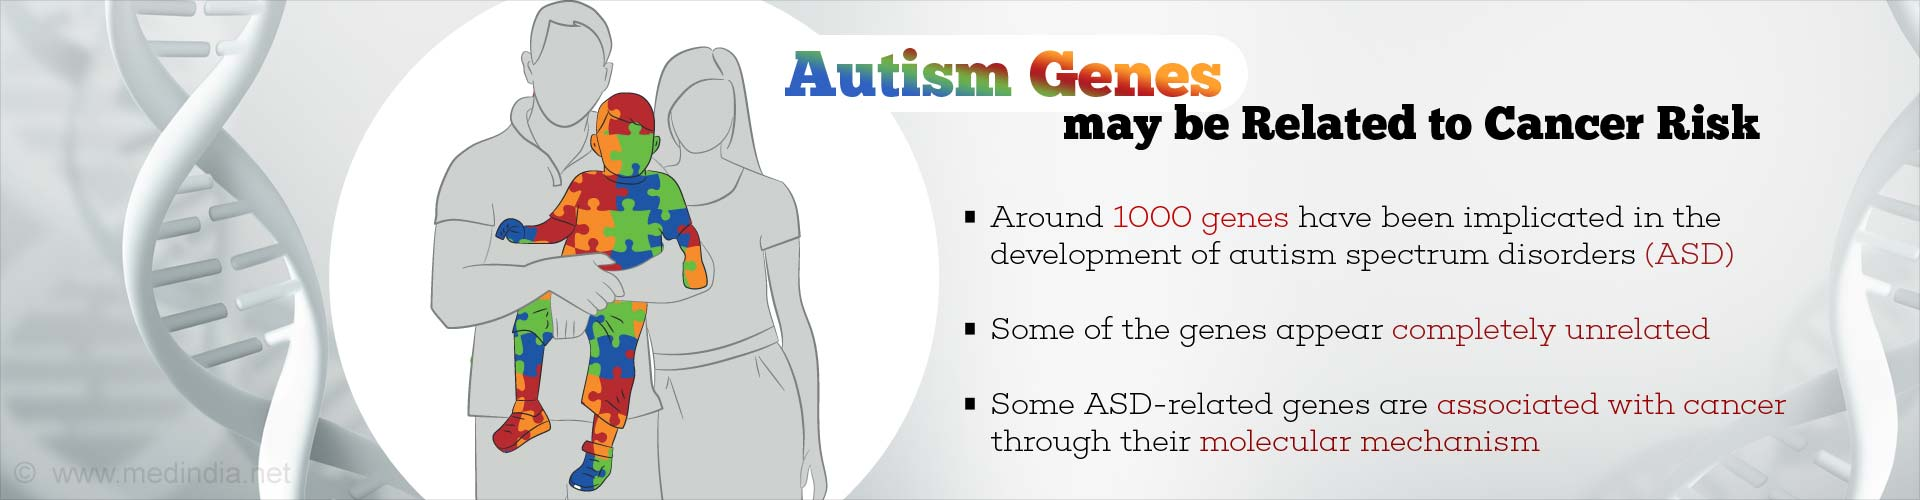 Network of Autism-related Genes Decoded